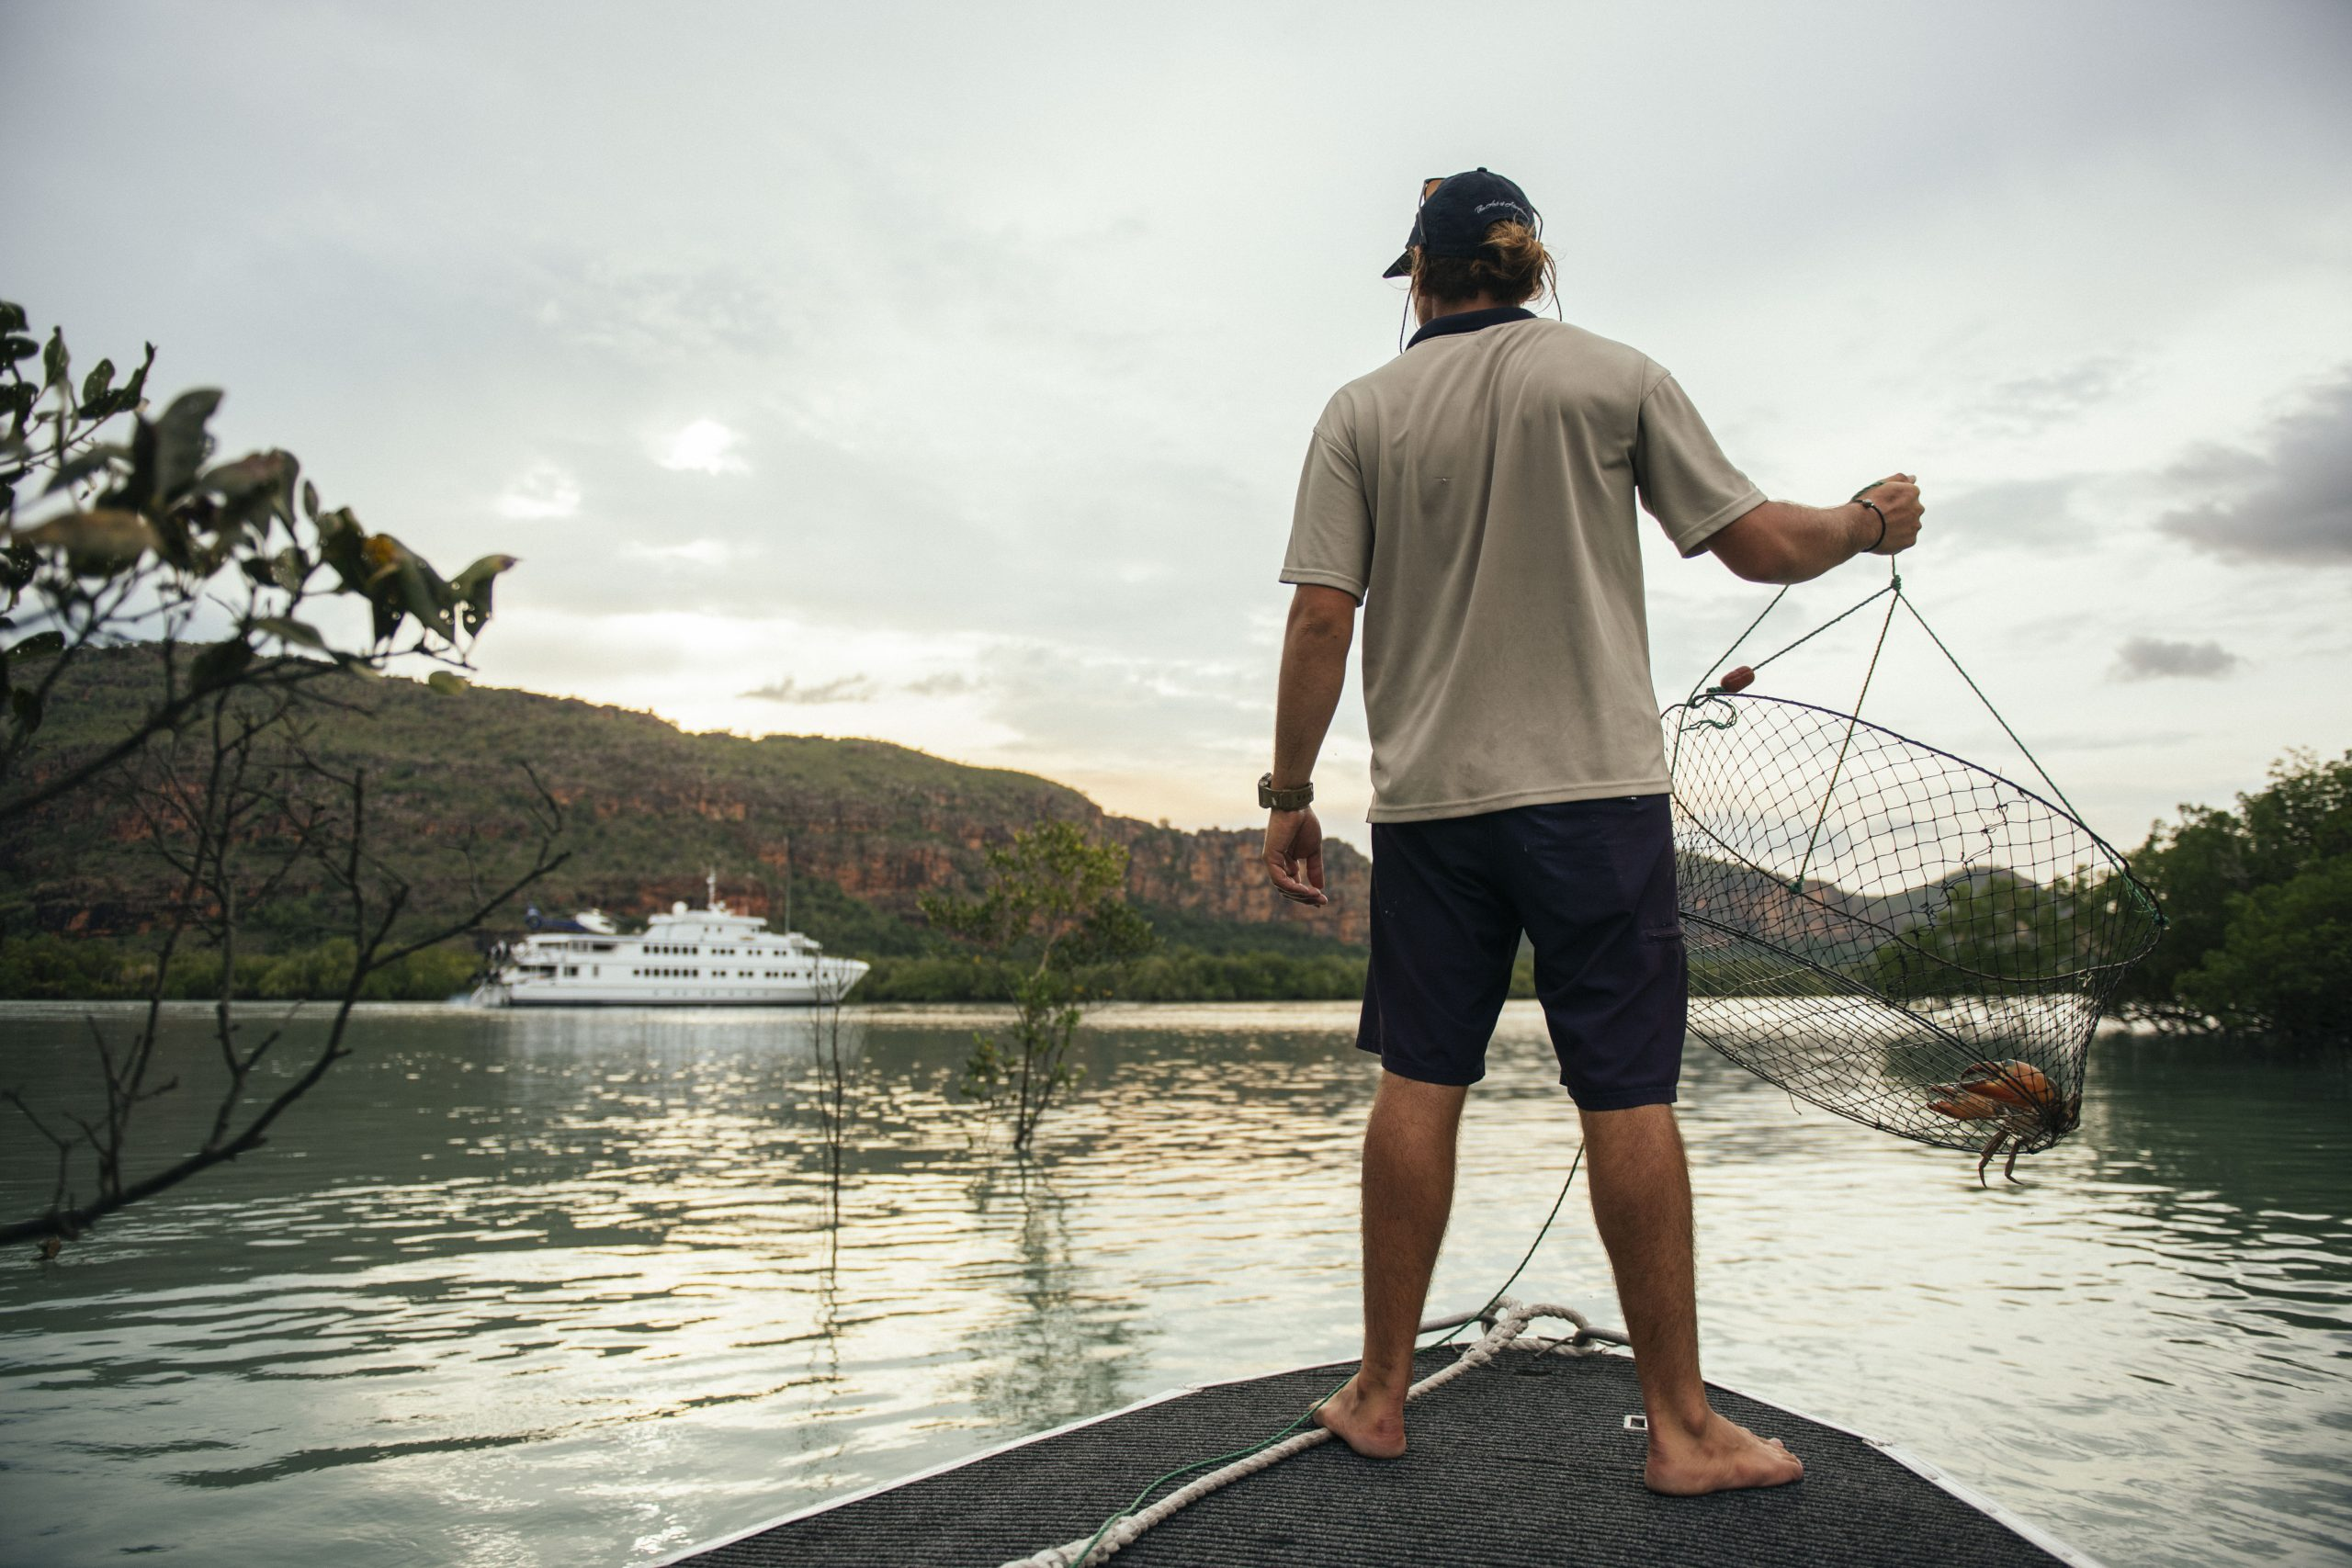 Experienced and knowledgeable fishing